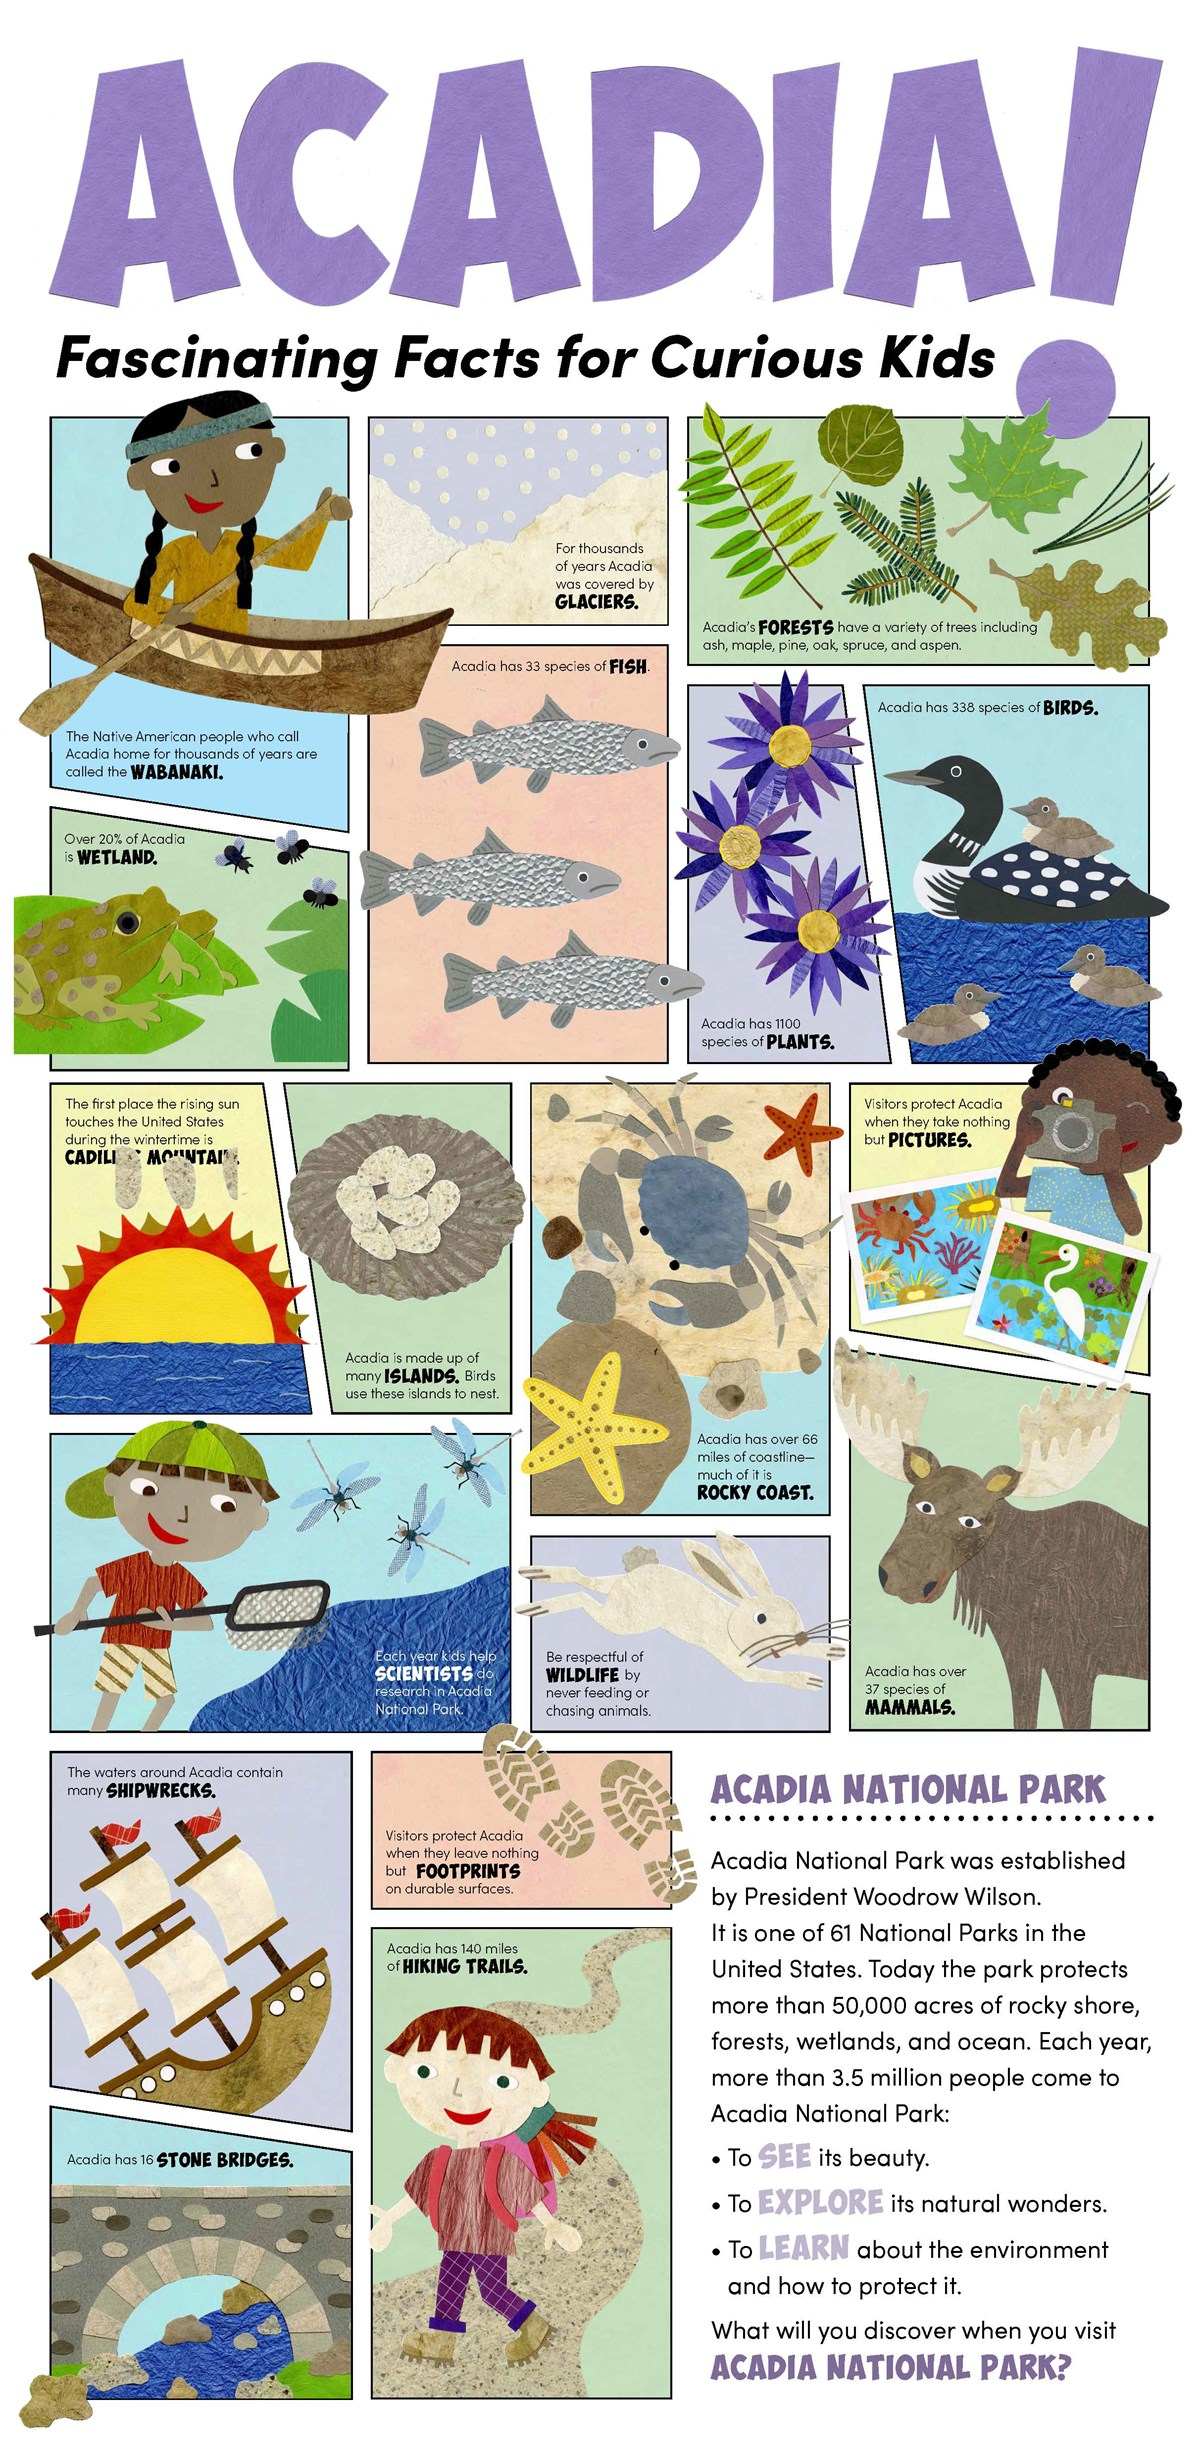 Childrens poster with many different graphics and text explaining different fun facts about Acadia National Park.